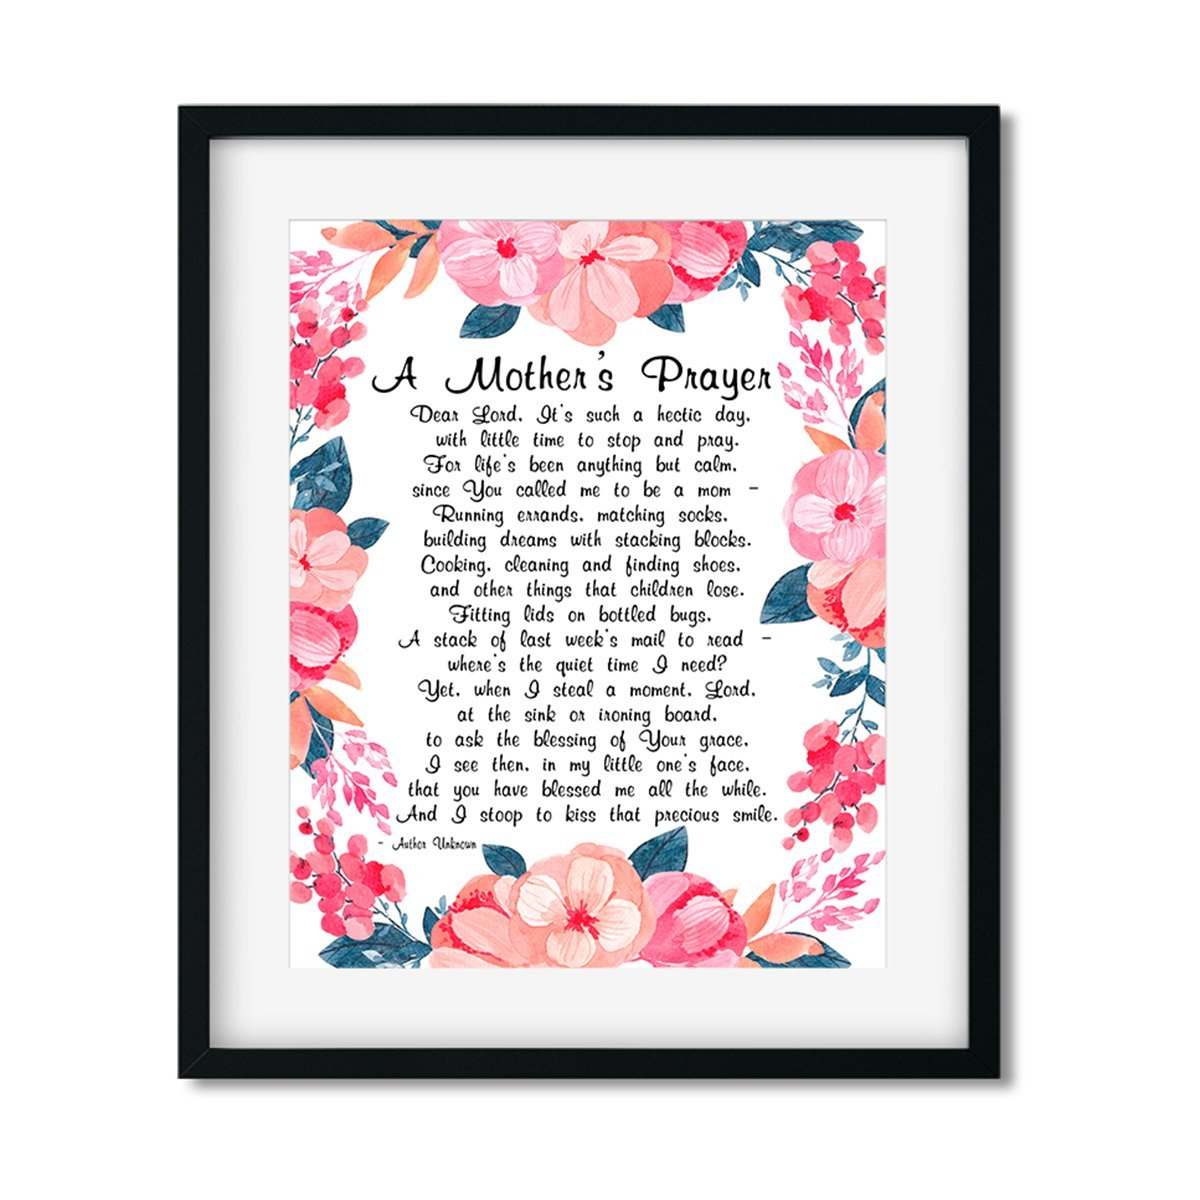 A Mother's Prayer - Art Print - Netties Expressions